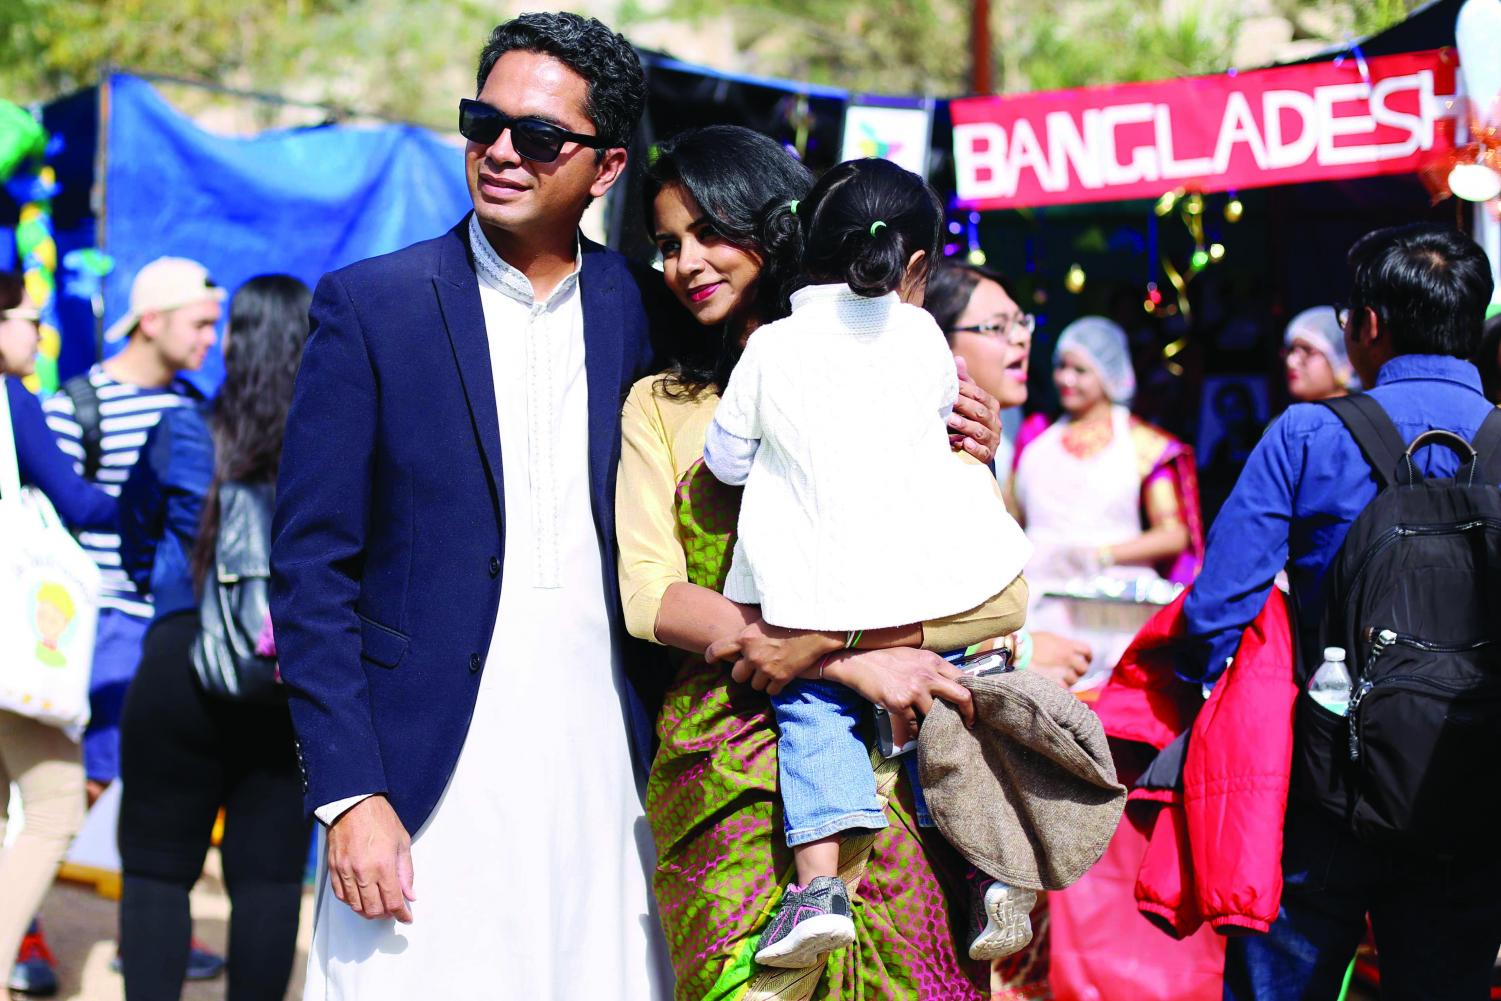 The Bangladeshi Student Association placed first in the food fair and won fan favorite as well.